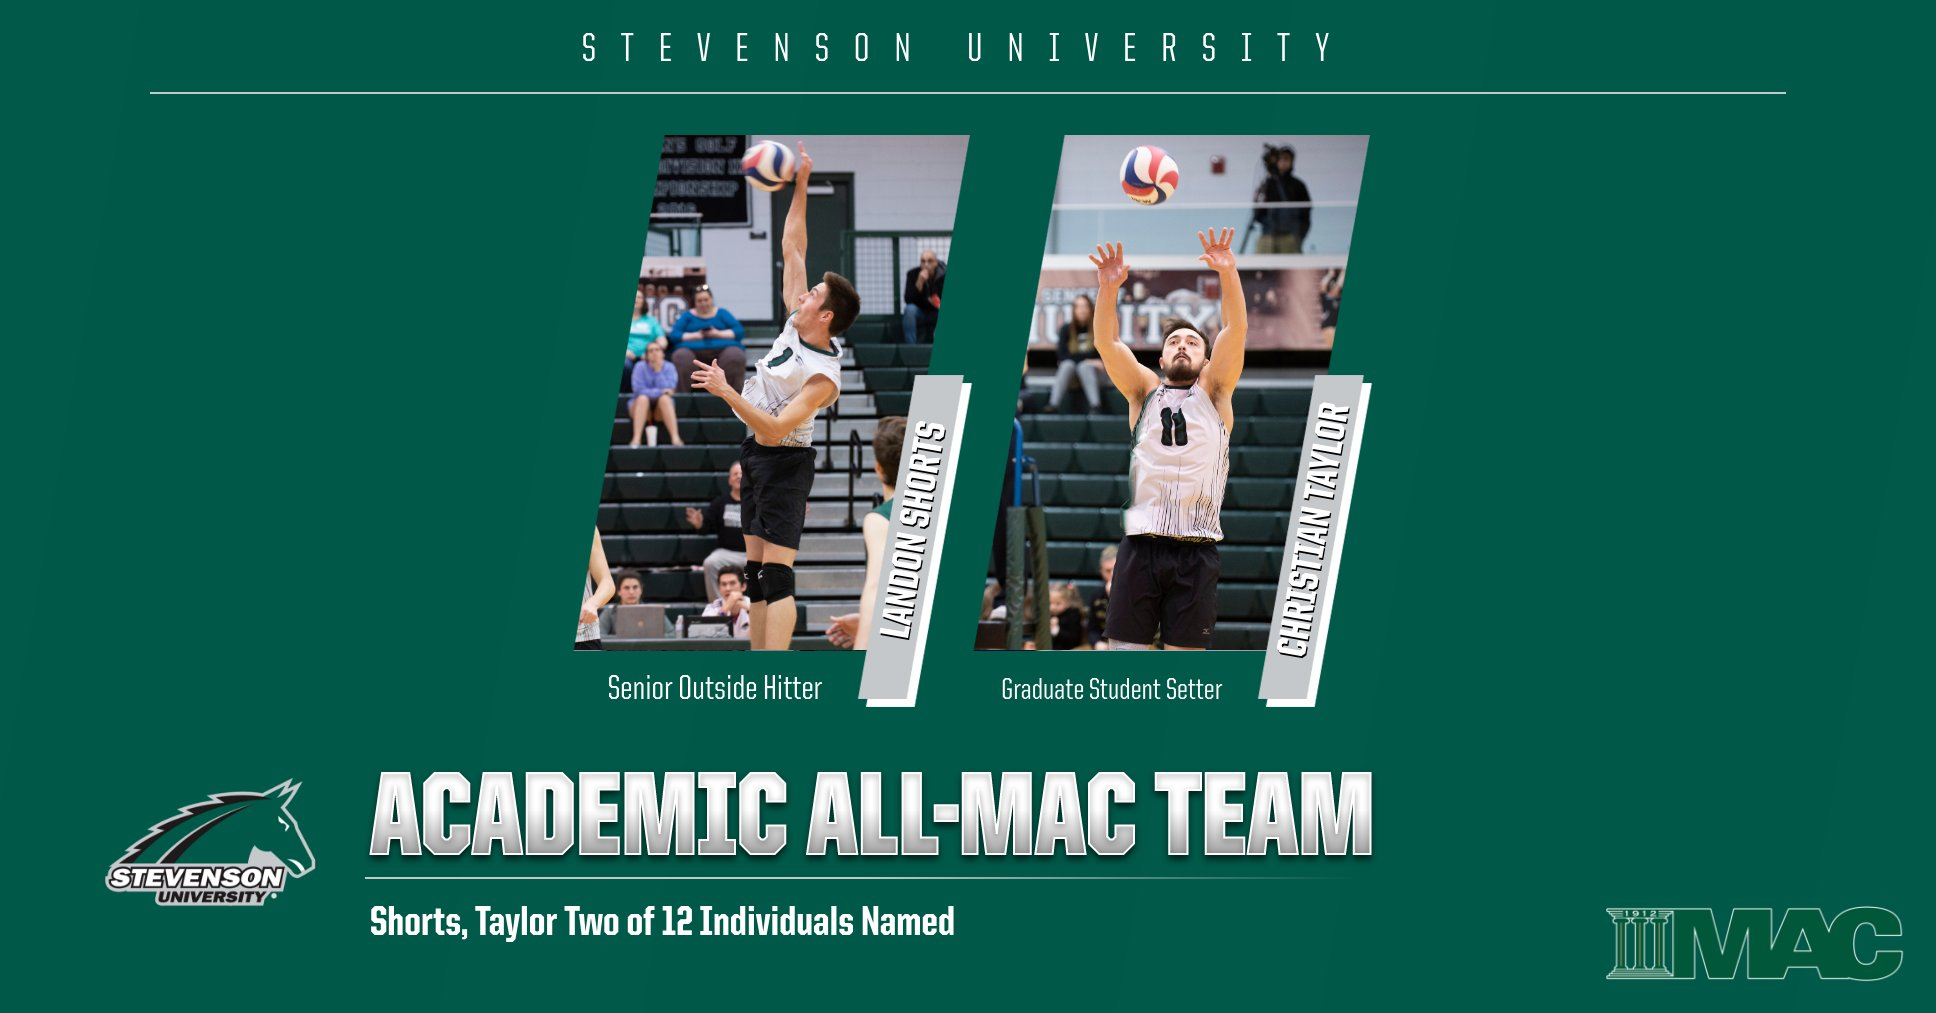 Shorts, Taylor Named to Academic All-MAC Team